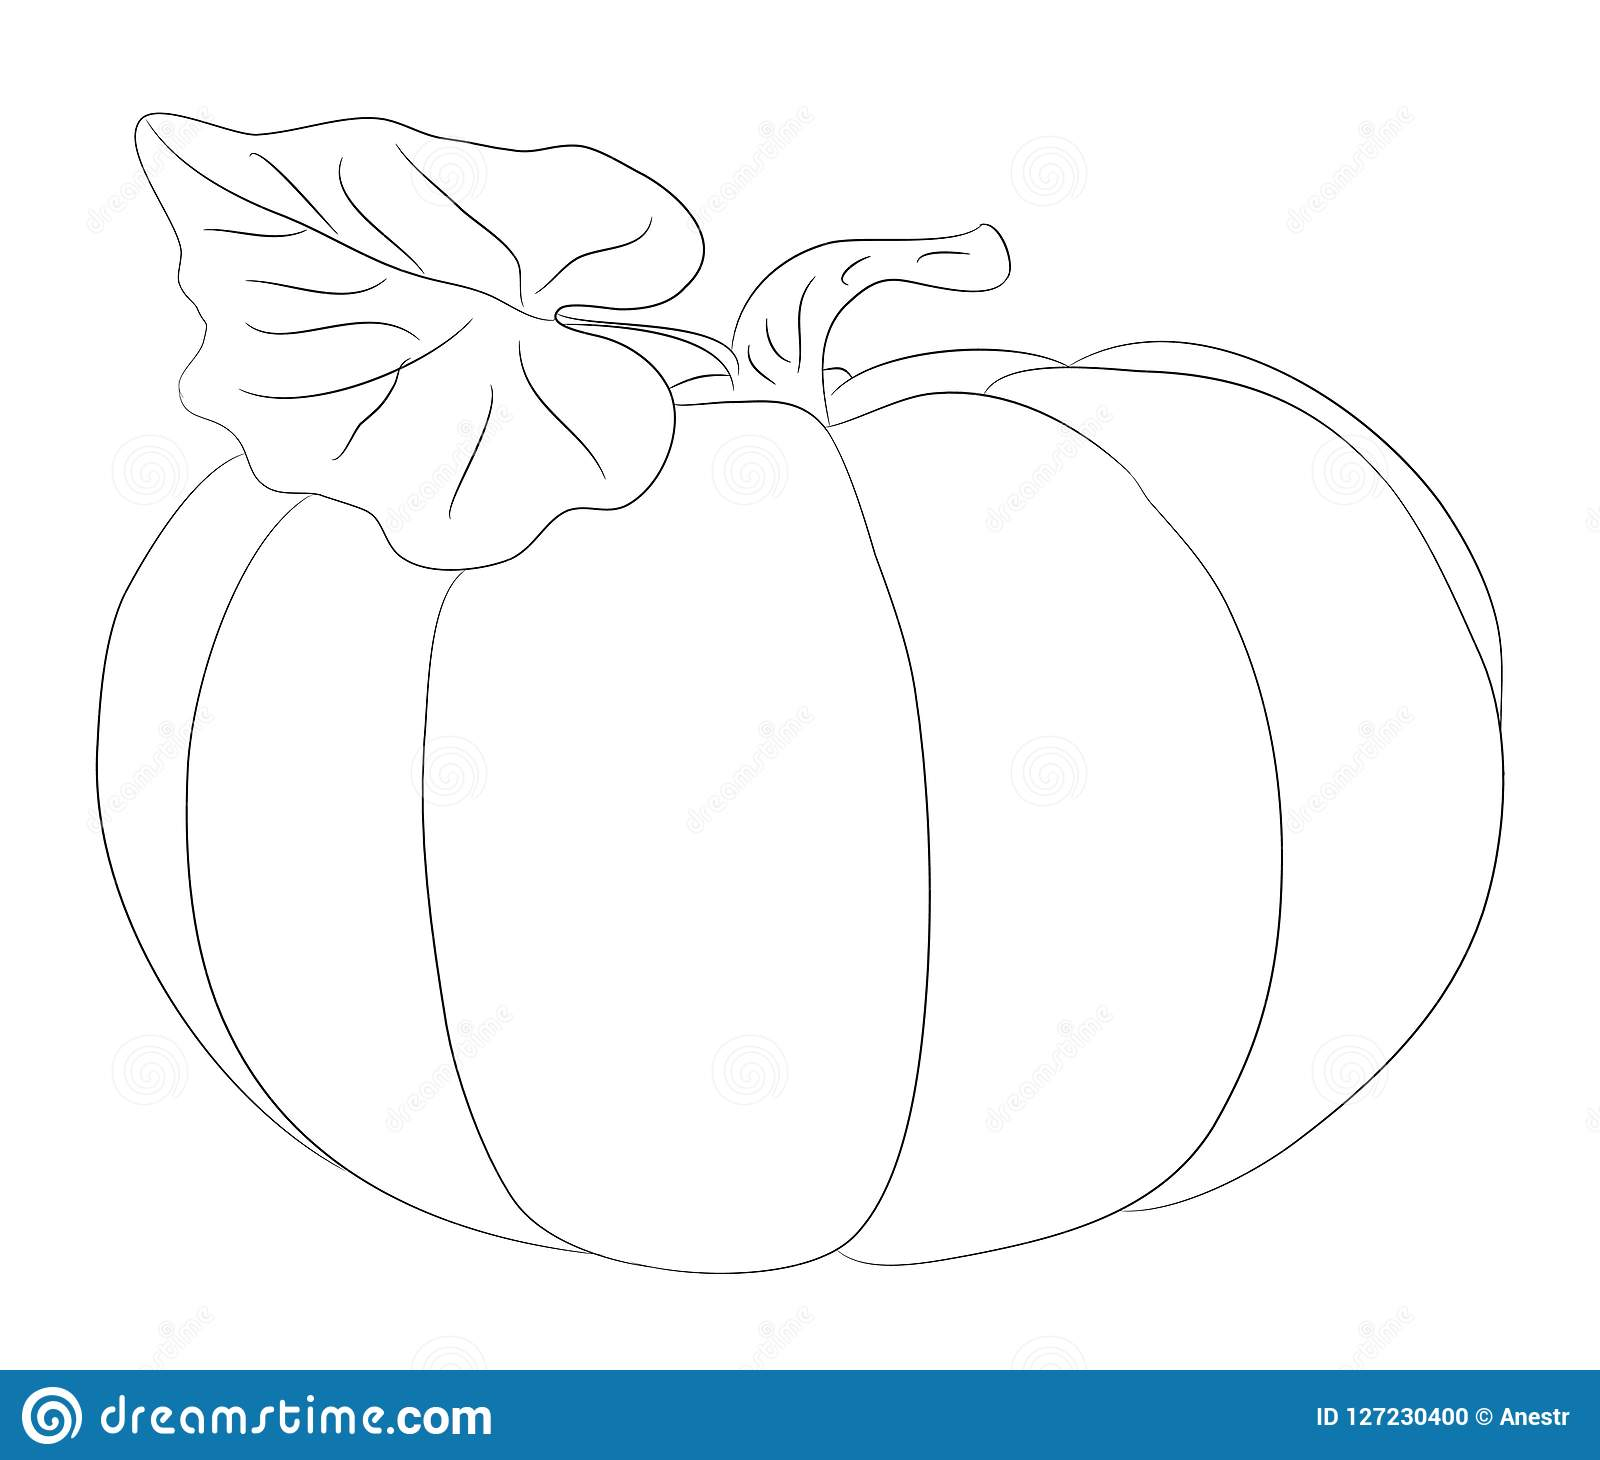 Vegetables And Fruits Drawing Lines Vector Stock Vector Illustration Of Avocado Graphics 127230400